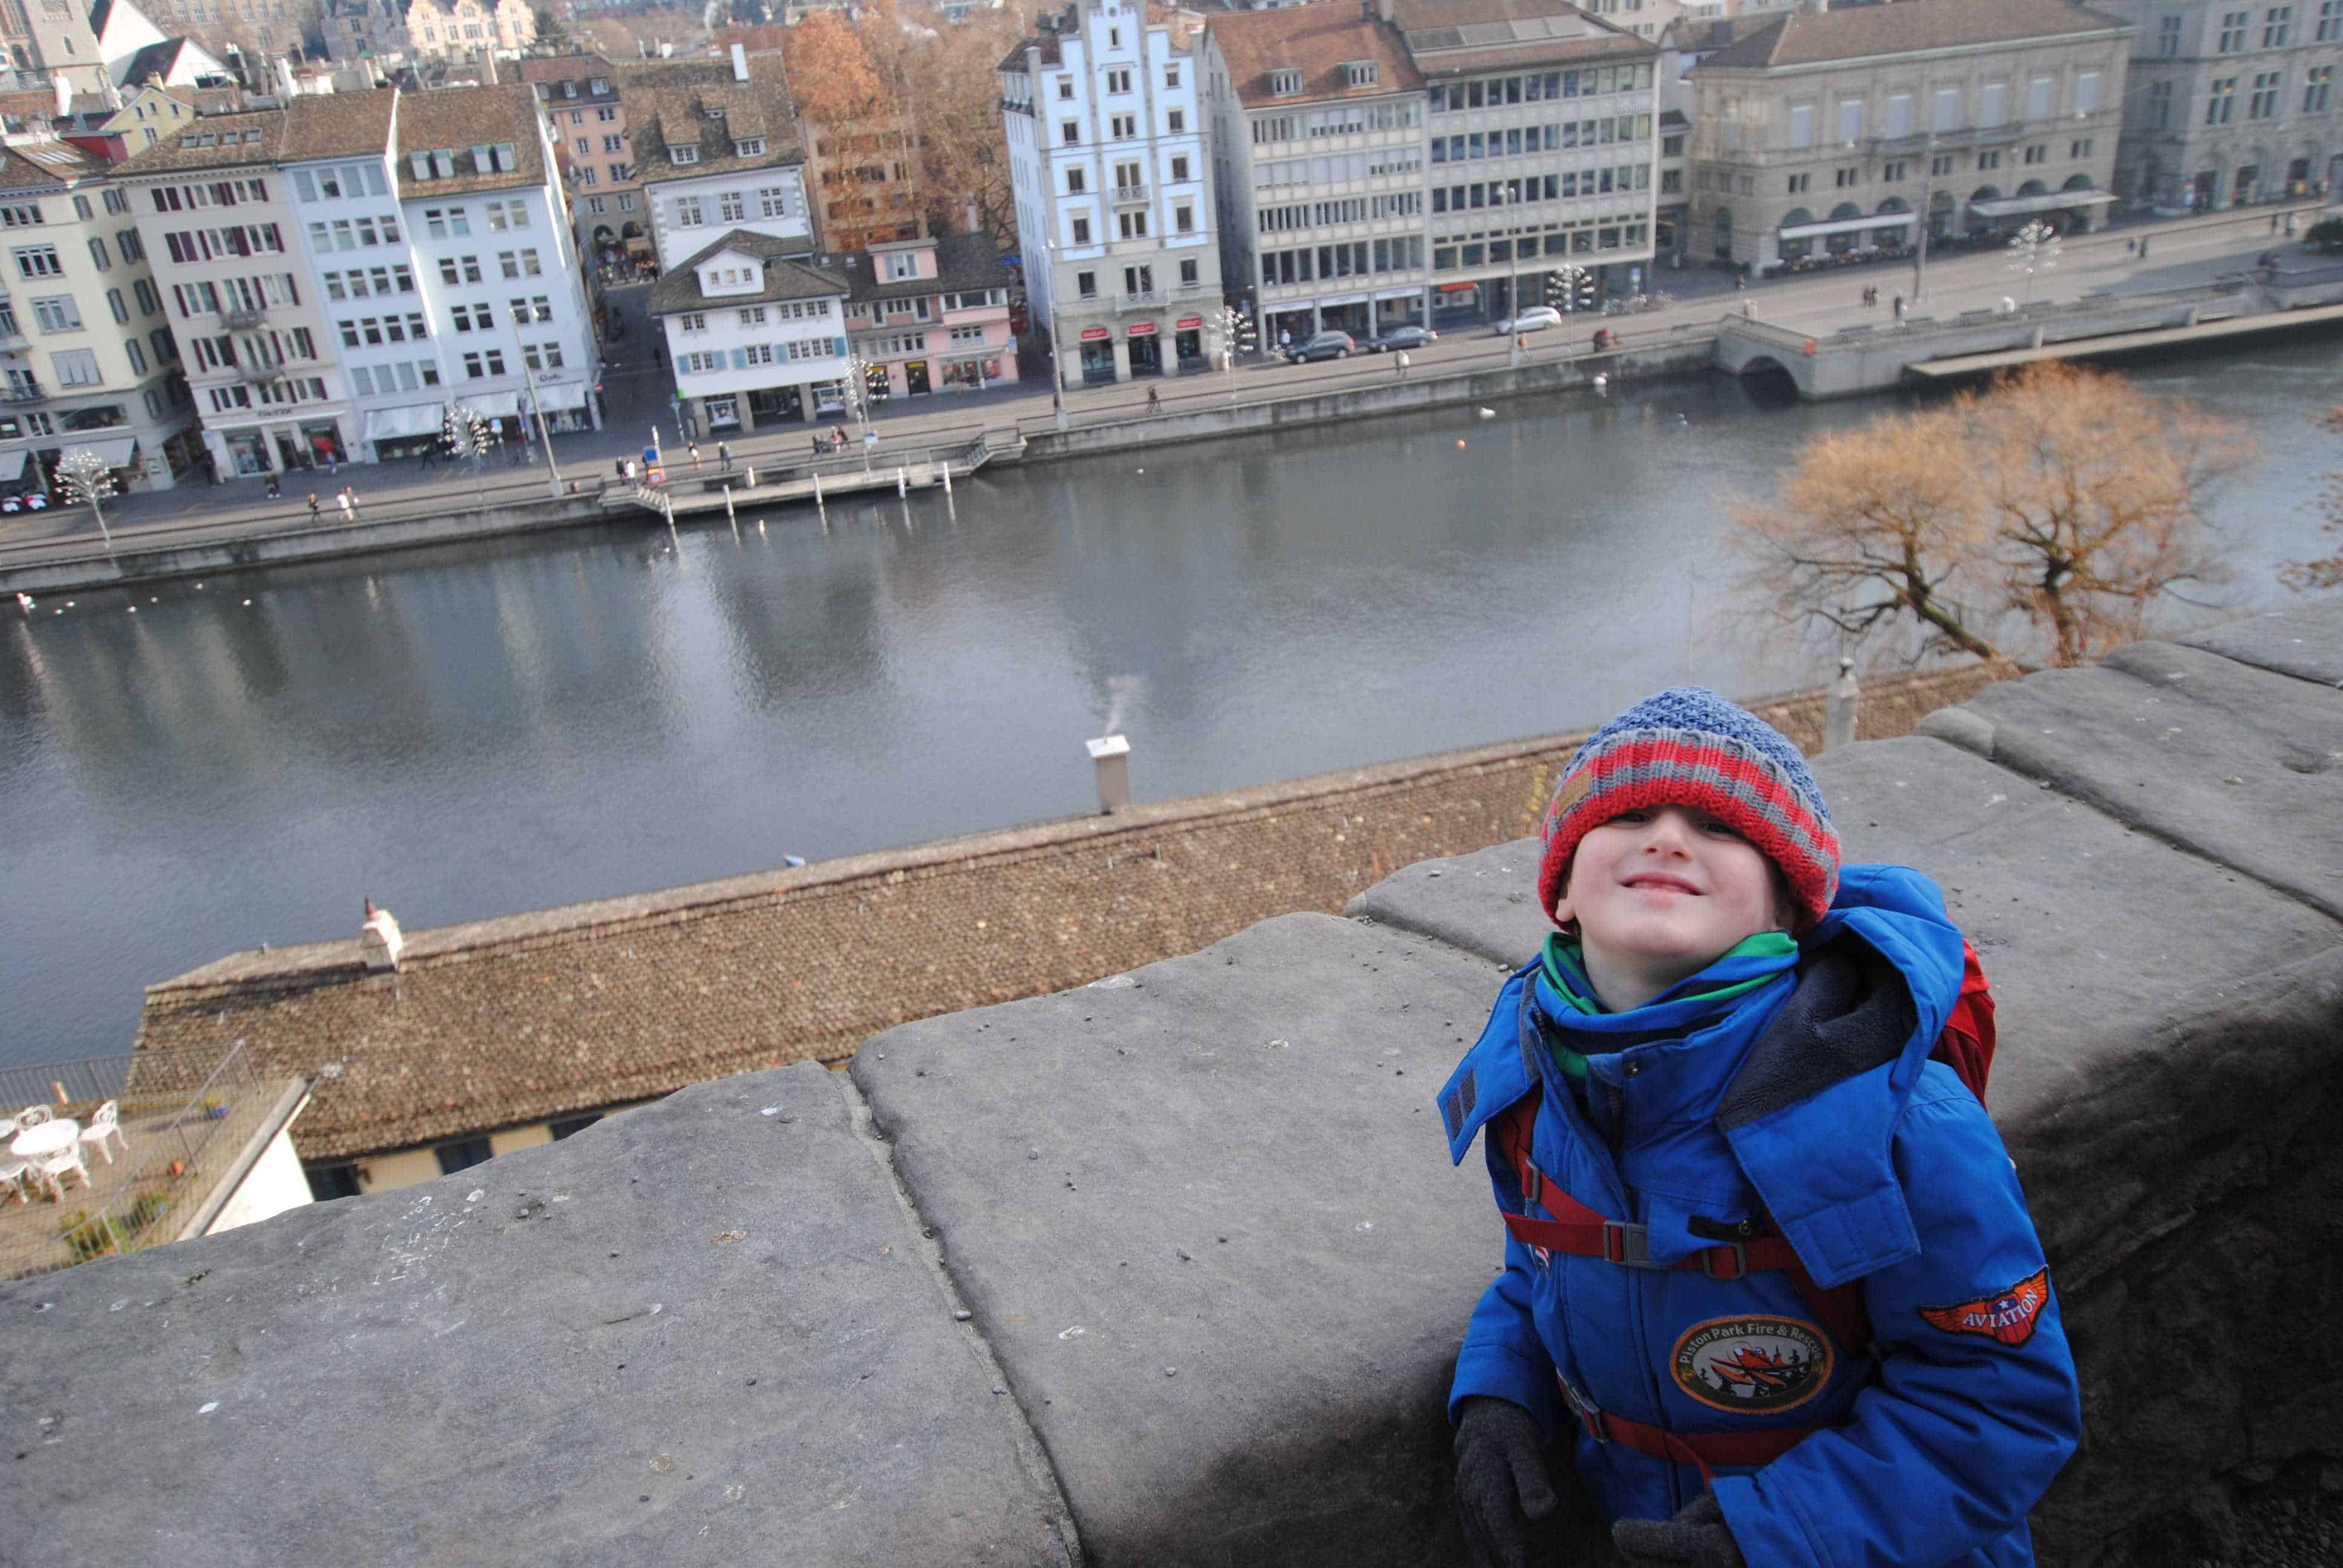 Touring a new city on your own is never easy when everything is so spread out. The Zurich walking tour is a great way to get your barings